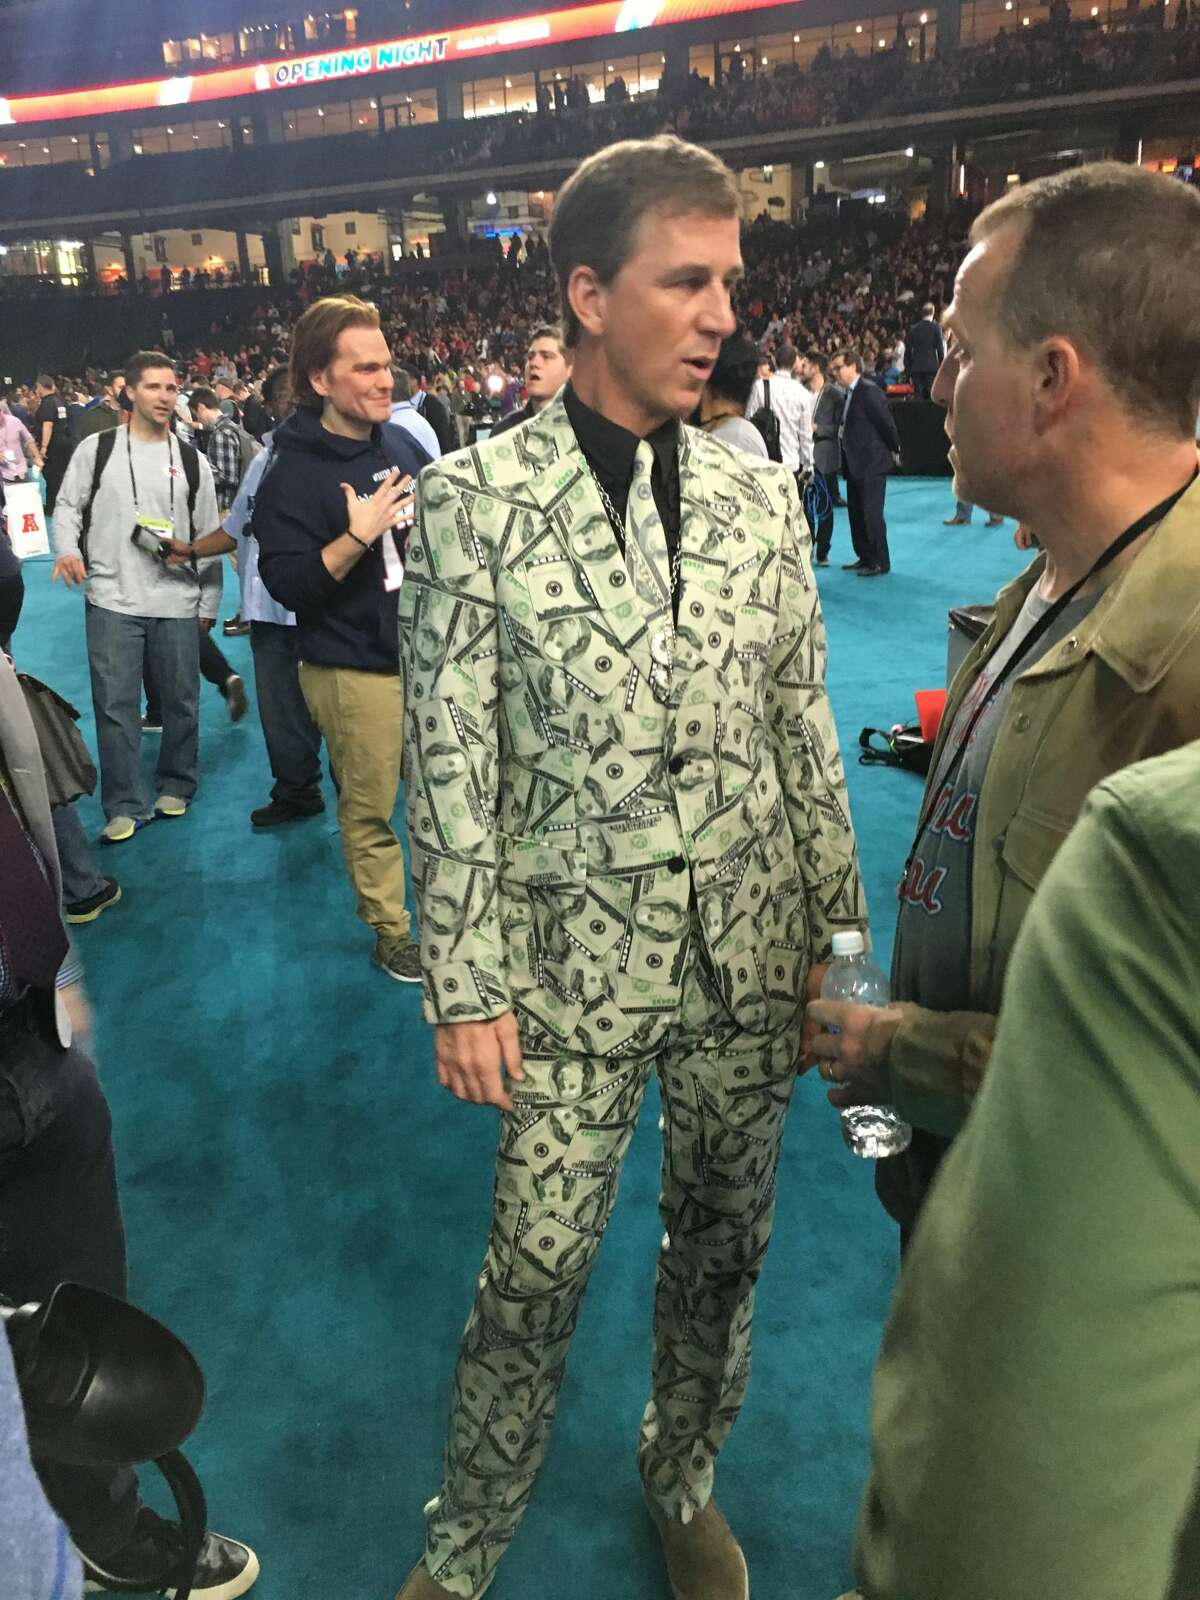 Cooper Manning's suit was money The sharpest dressed man was Cooper Manning, older brother of Peyton and Eli Manning. The guy was wearing a suit covered in the design of $100 bills complete with a matching tie. Cooper Manning is the coolest Manning.